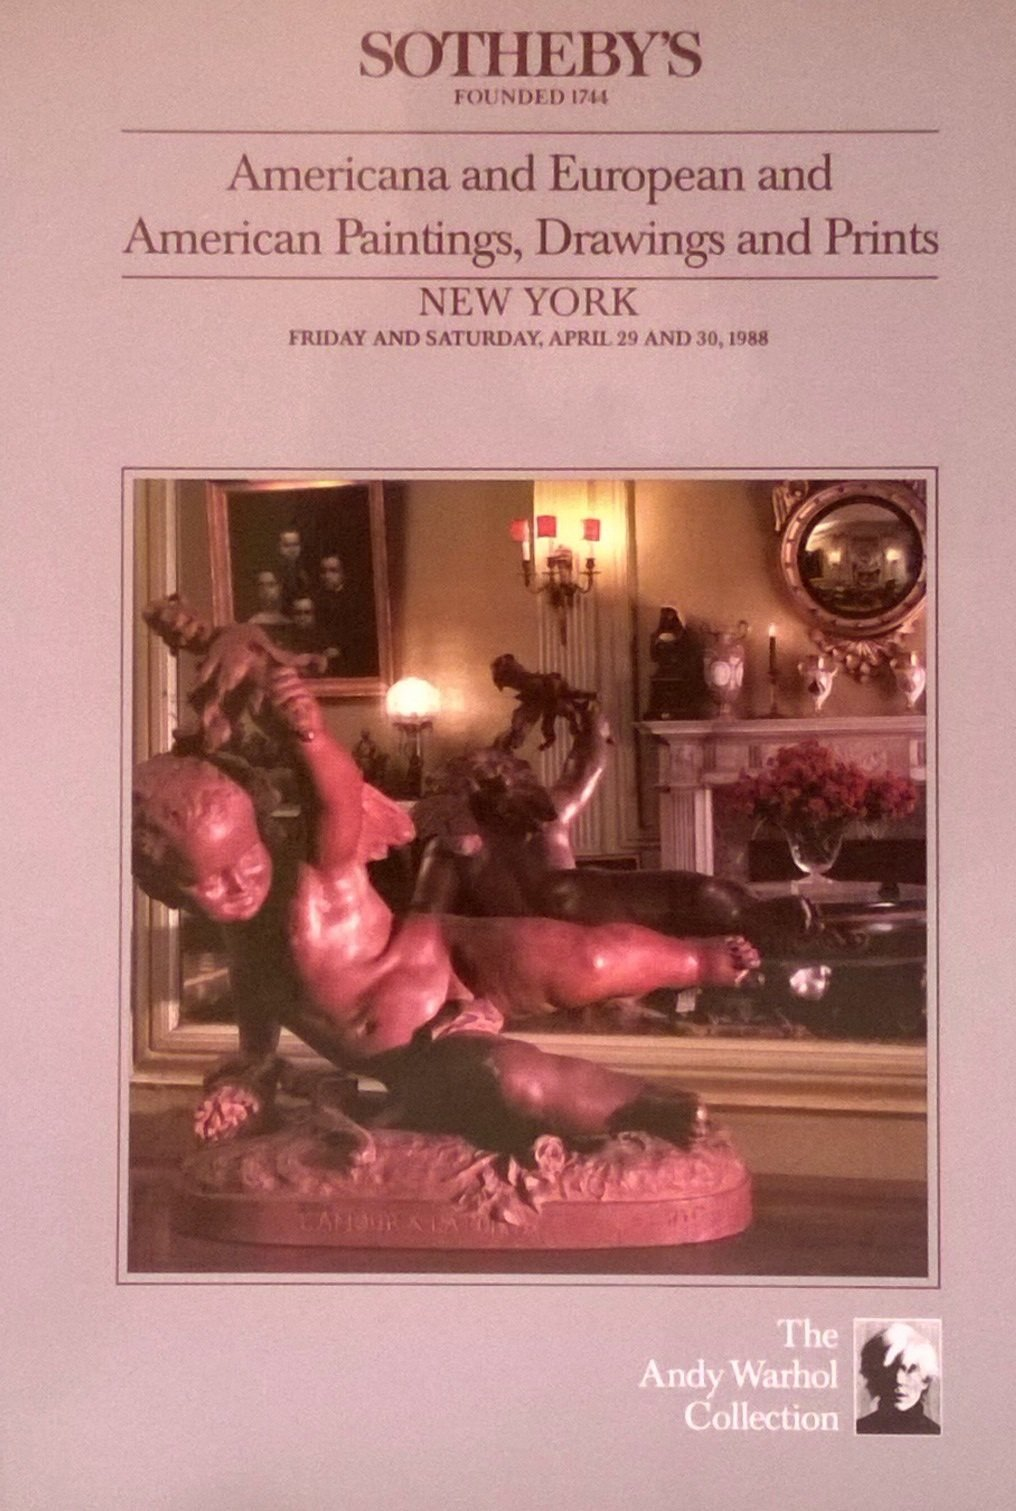 sothebys sale 6000 americana and european paintings drawings and prints andy warhol collection april 29 30 1988